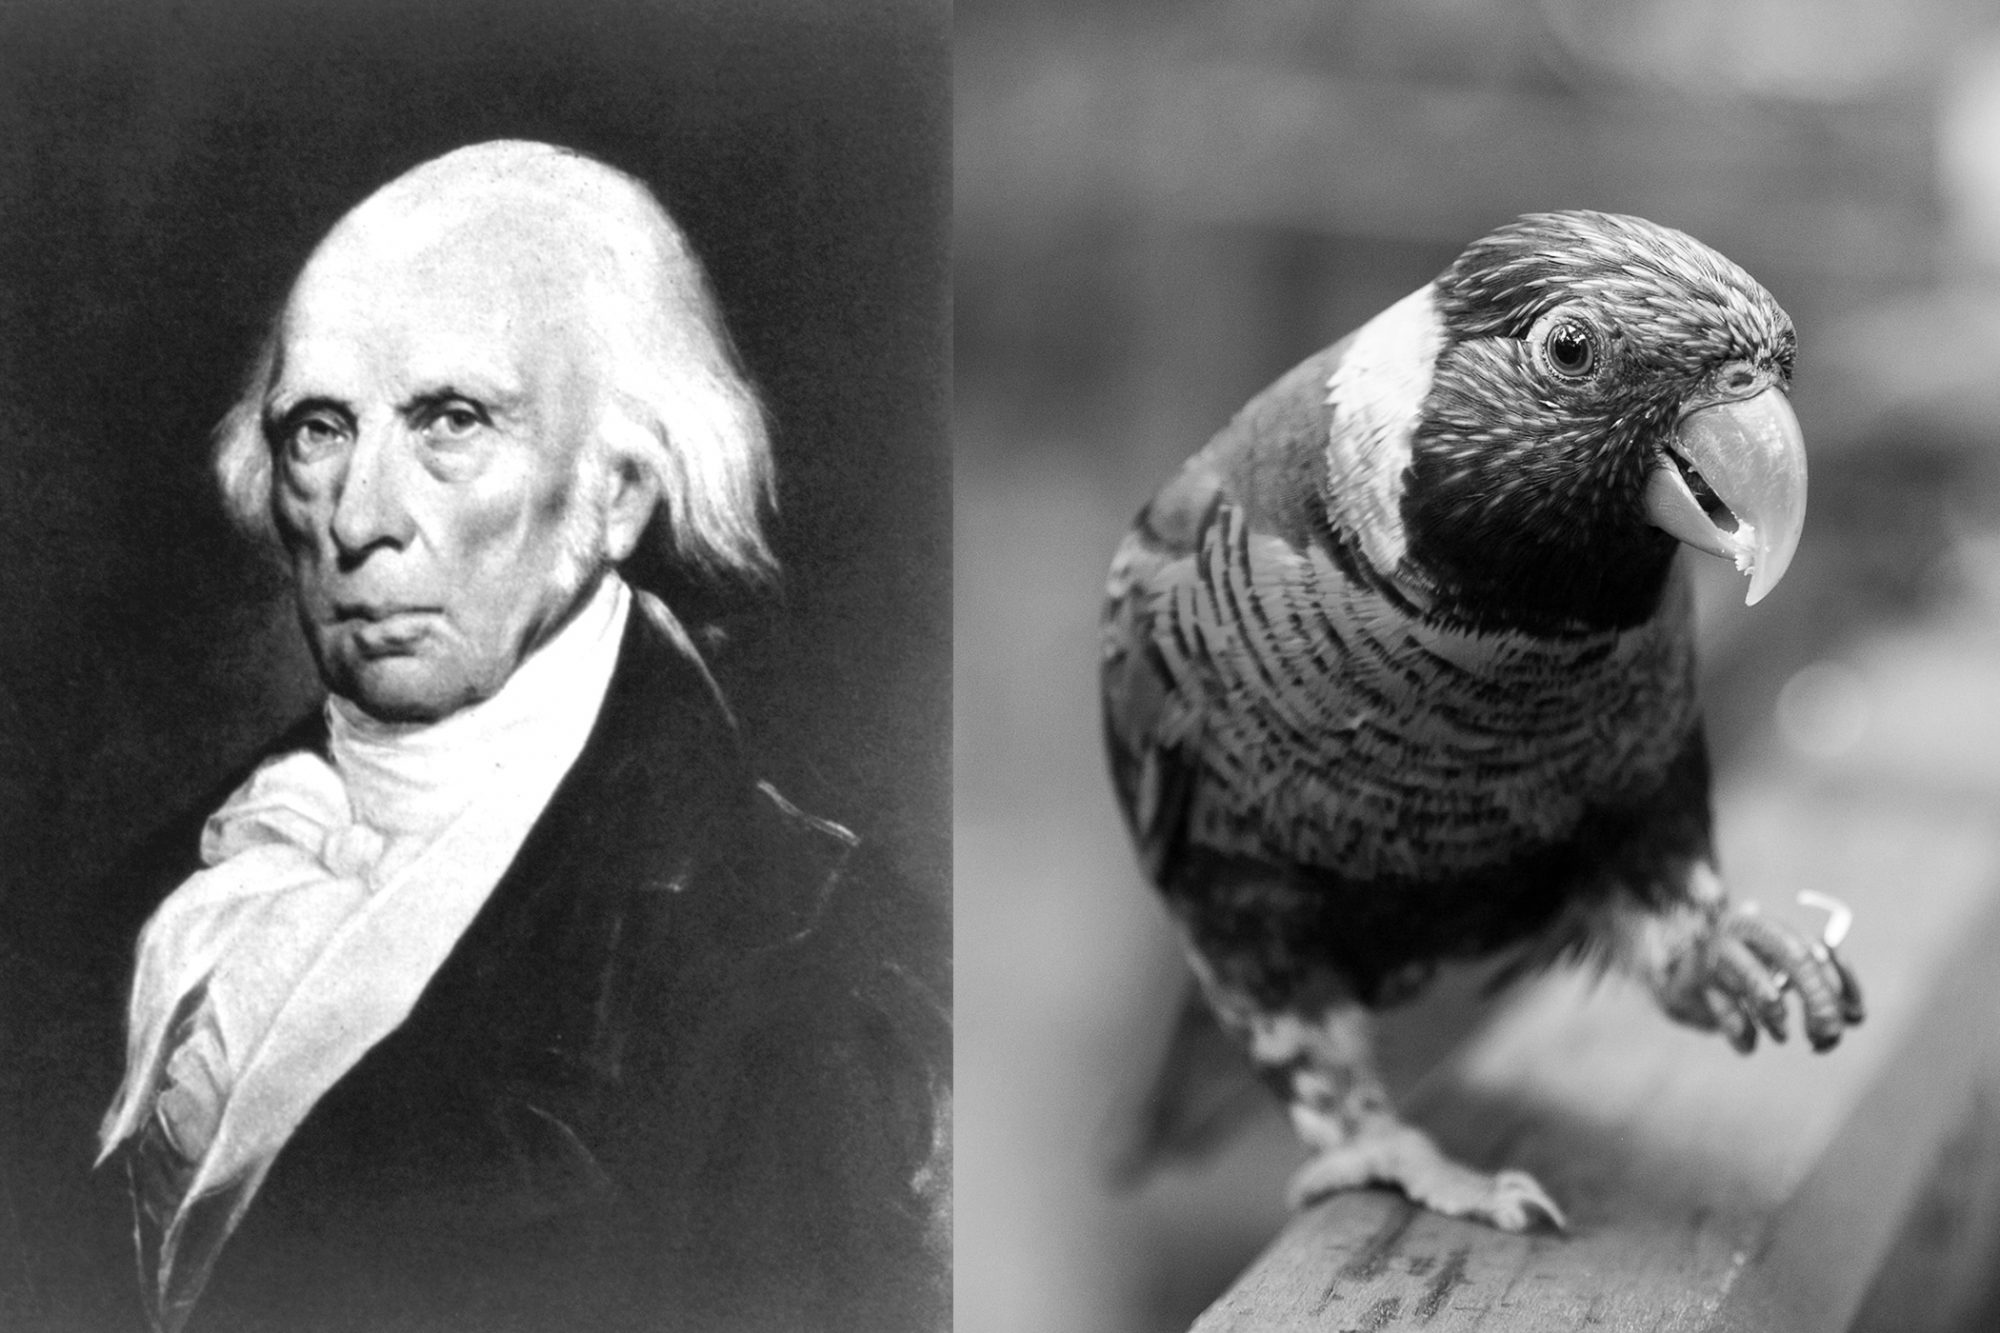 Composite of James Madison and stock photo of bird